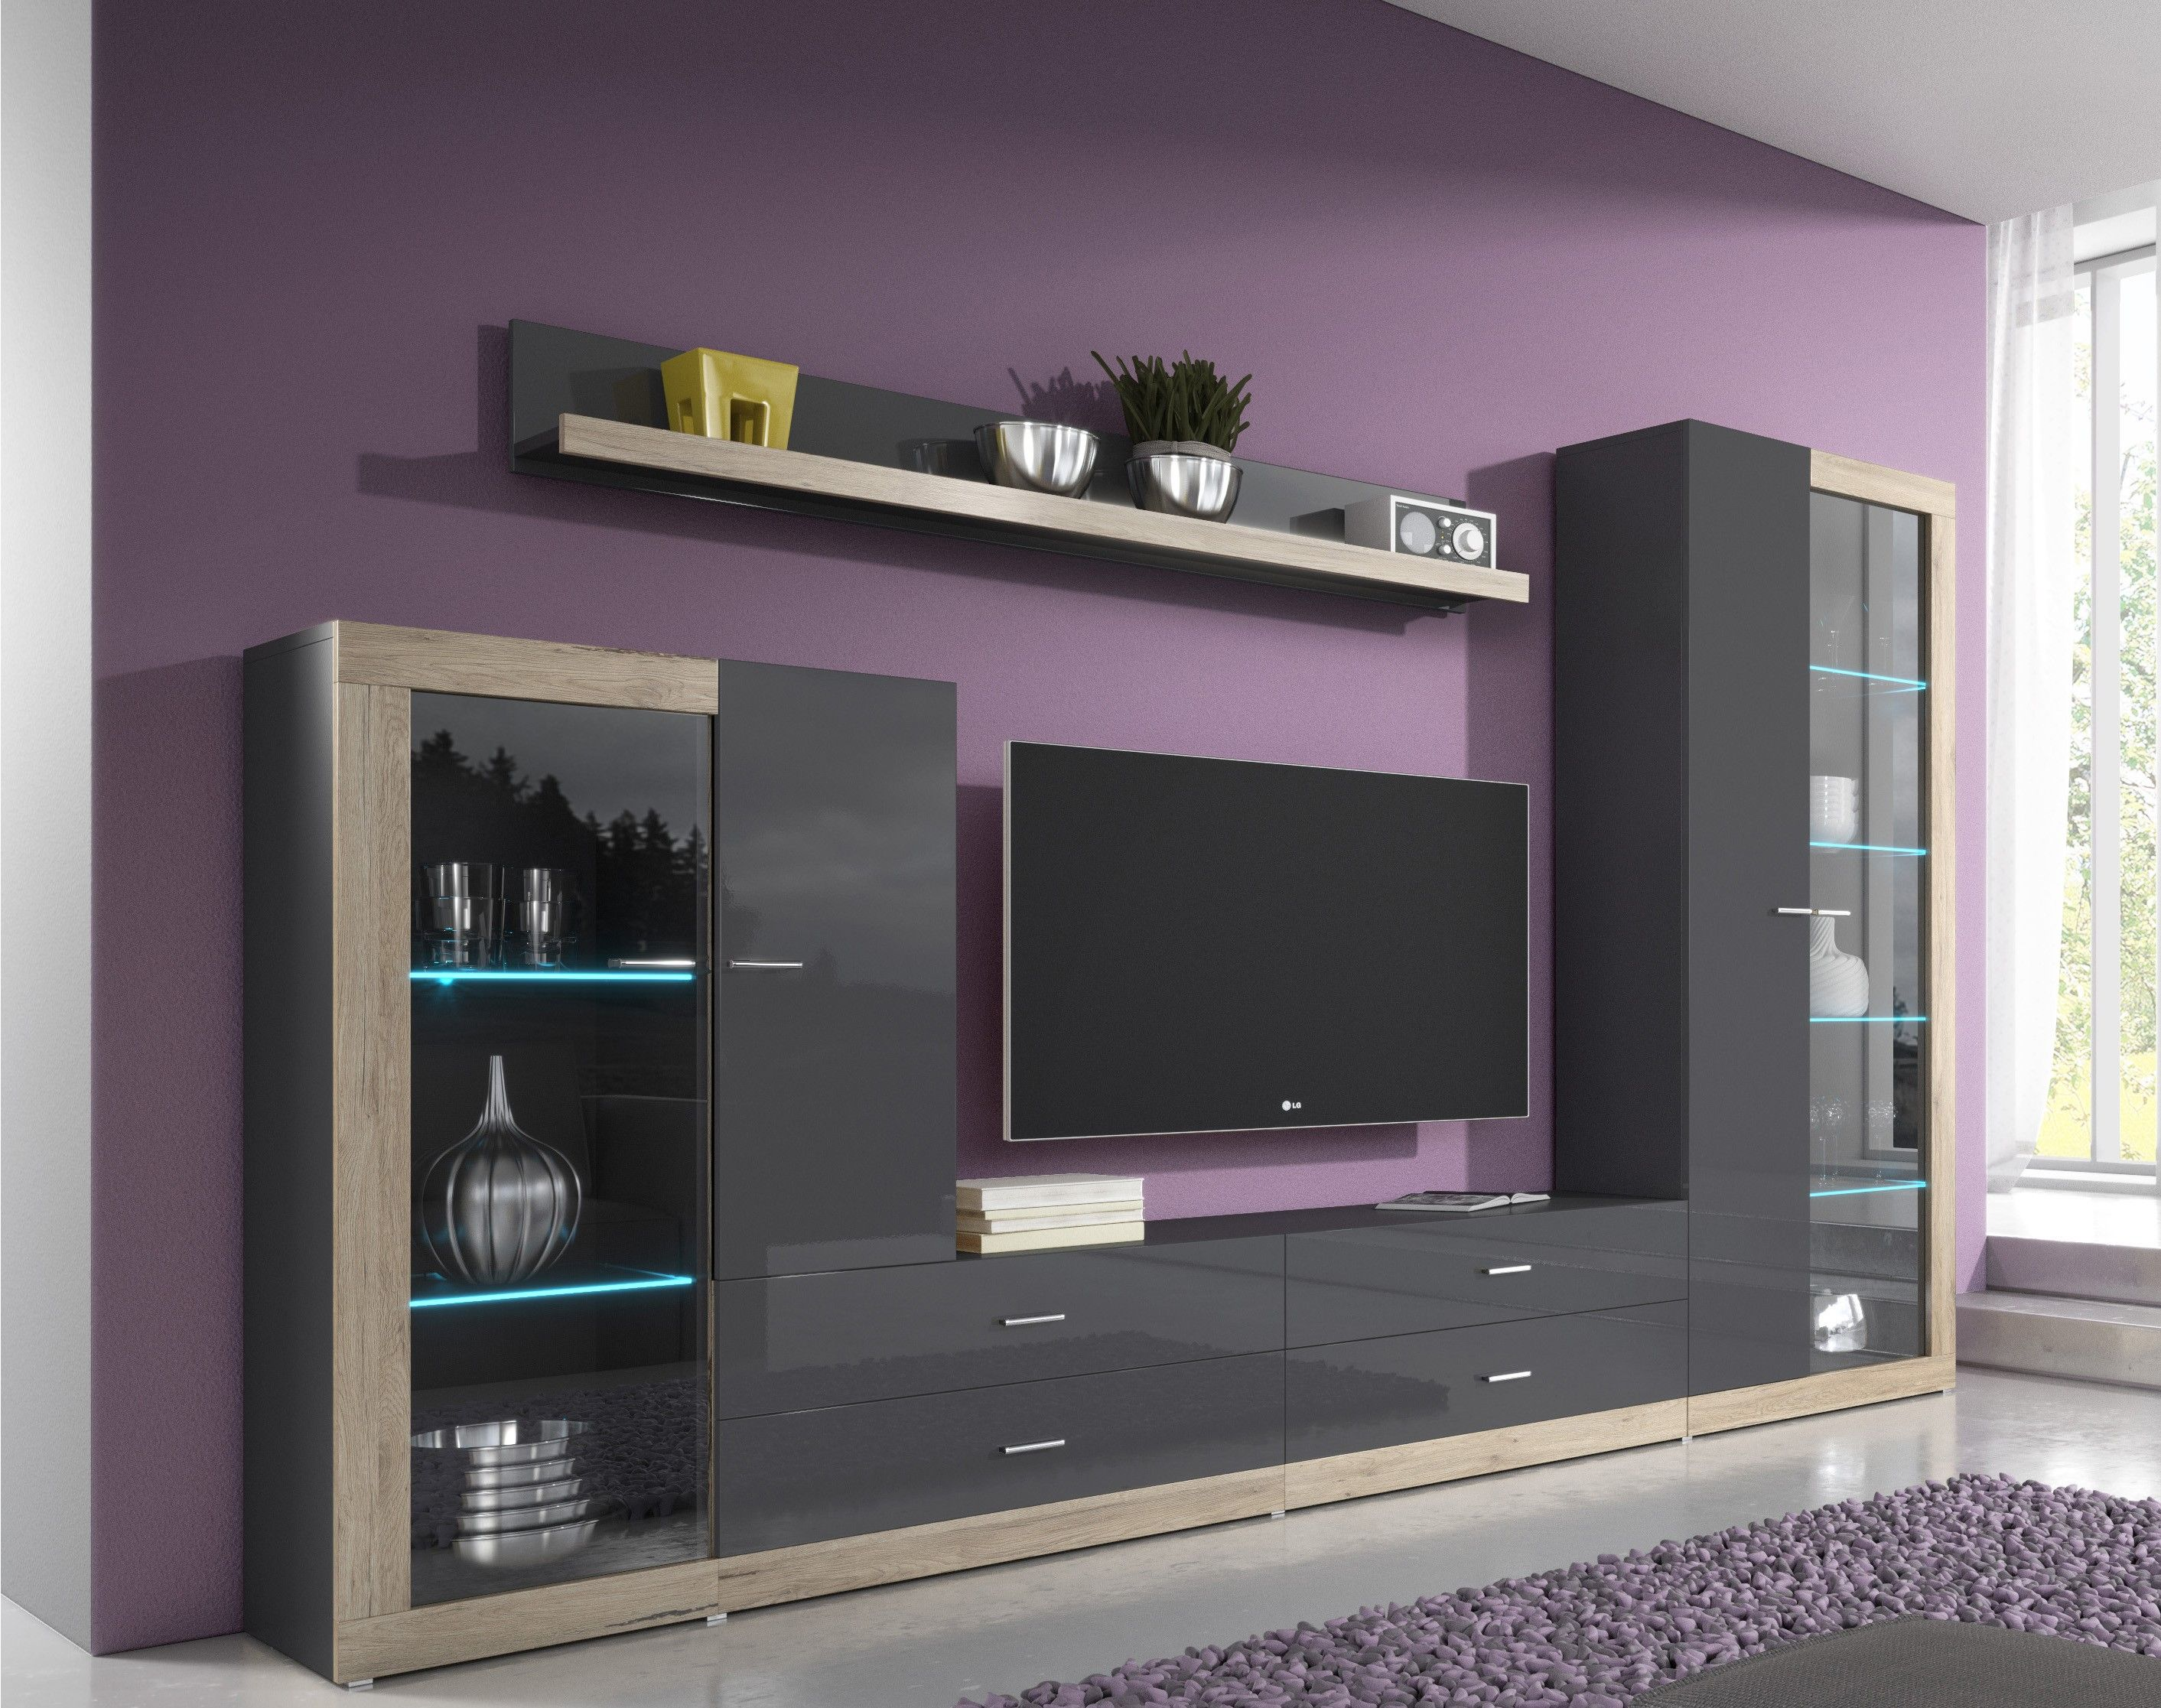 New York, NY in 2020 | Modern tv wall units, Living room ...